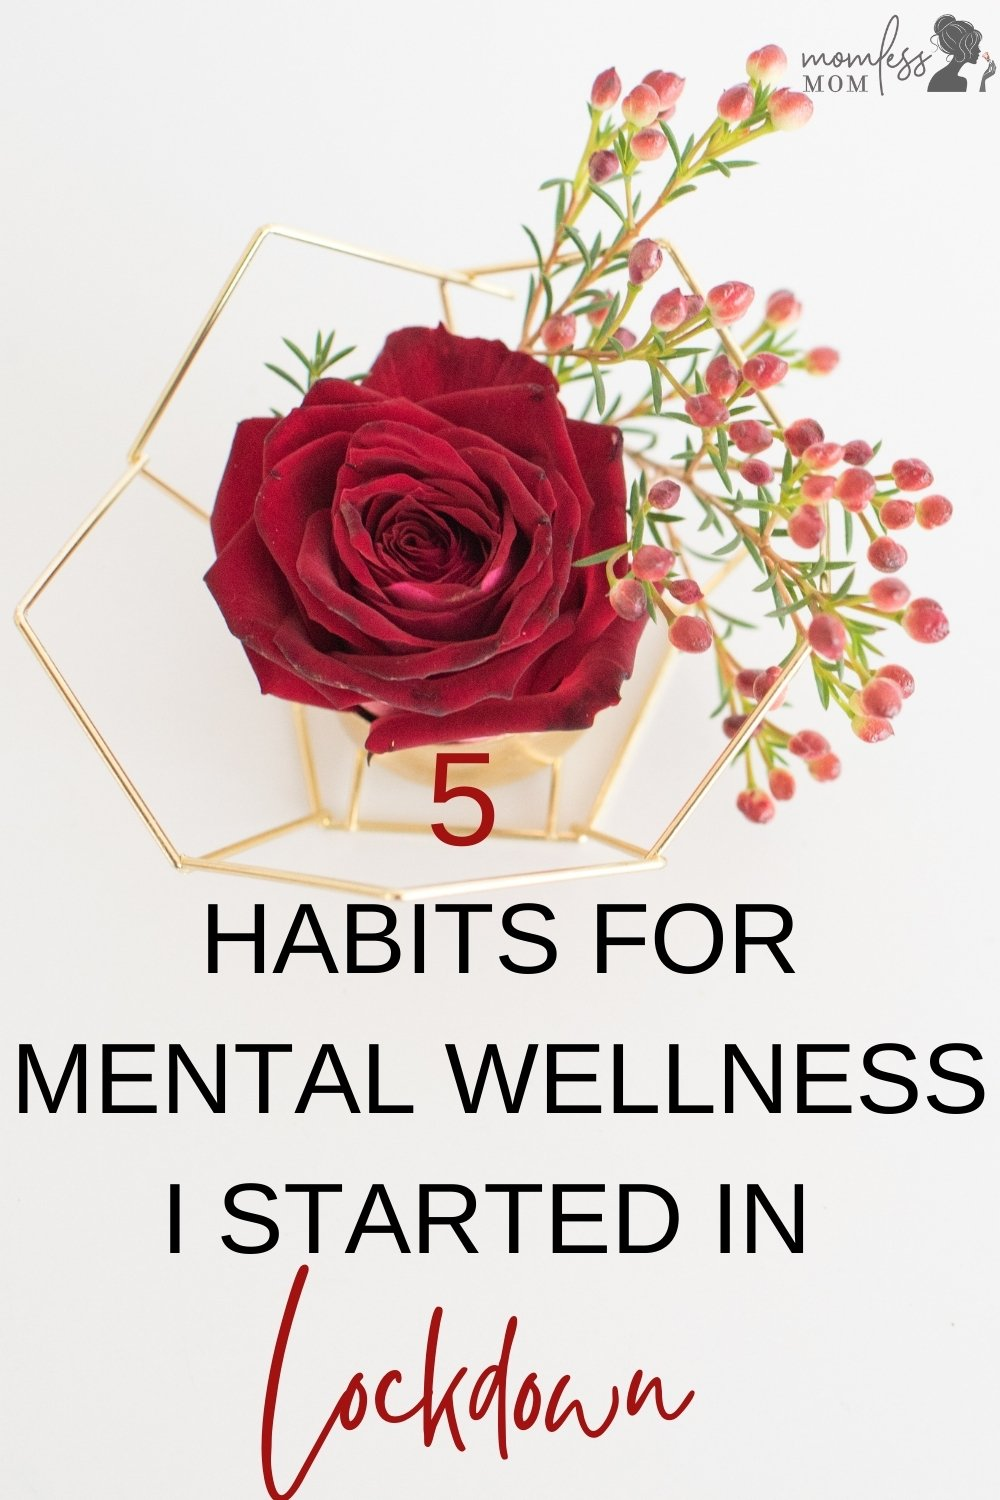 5 Habits for Mental Wellness for Lockdown